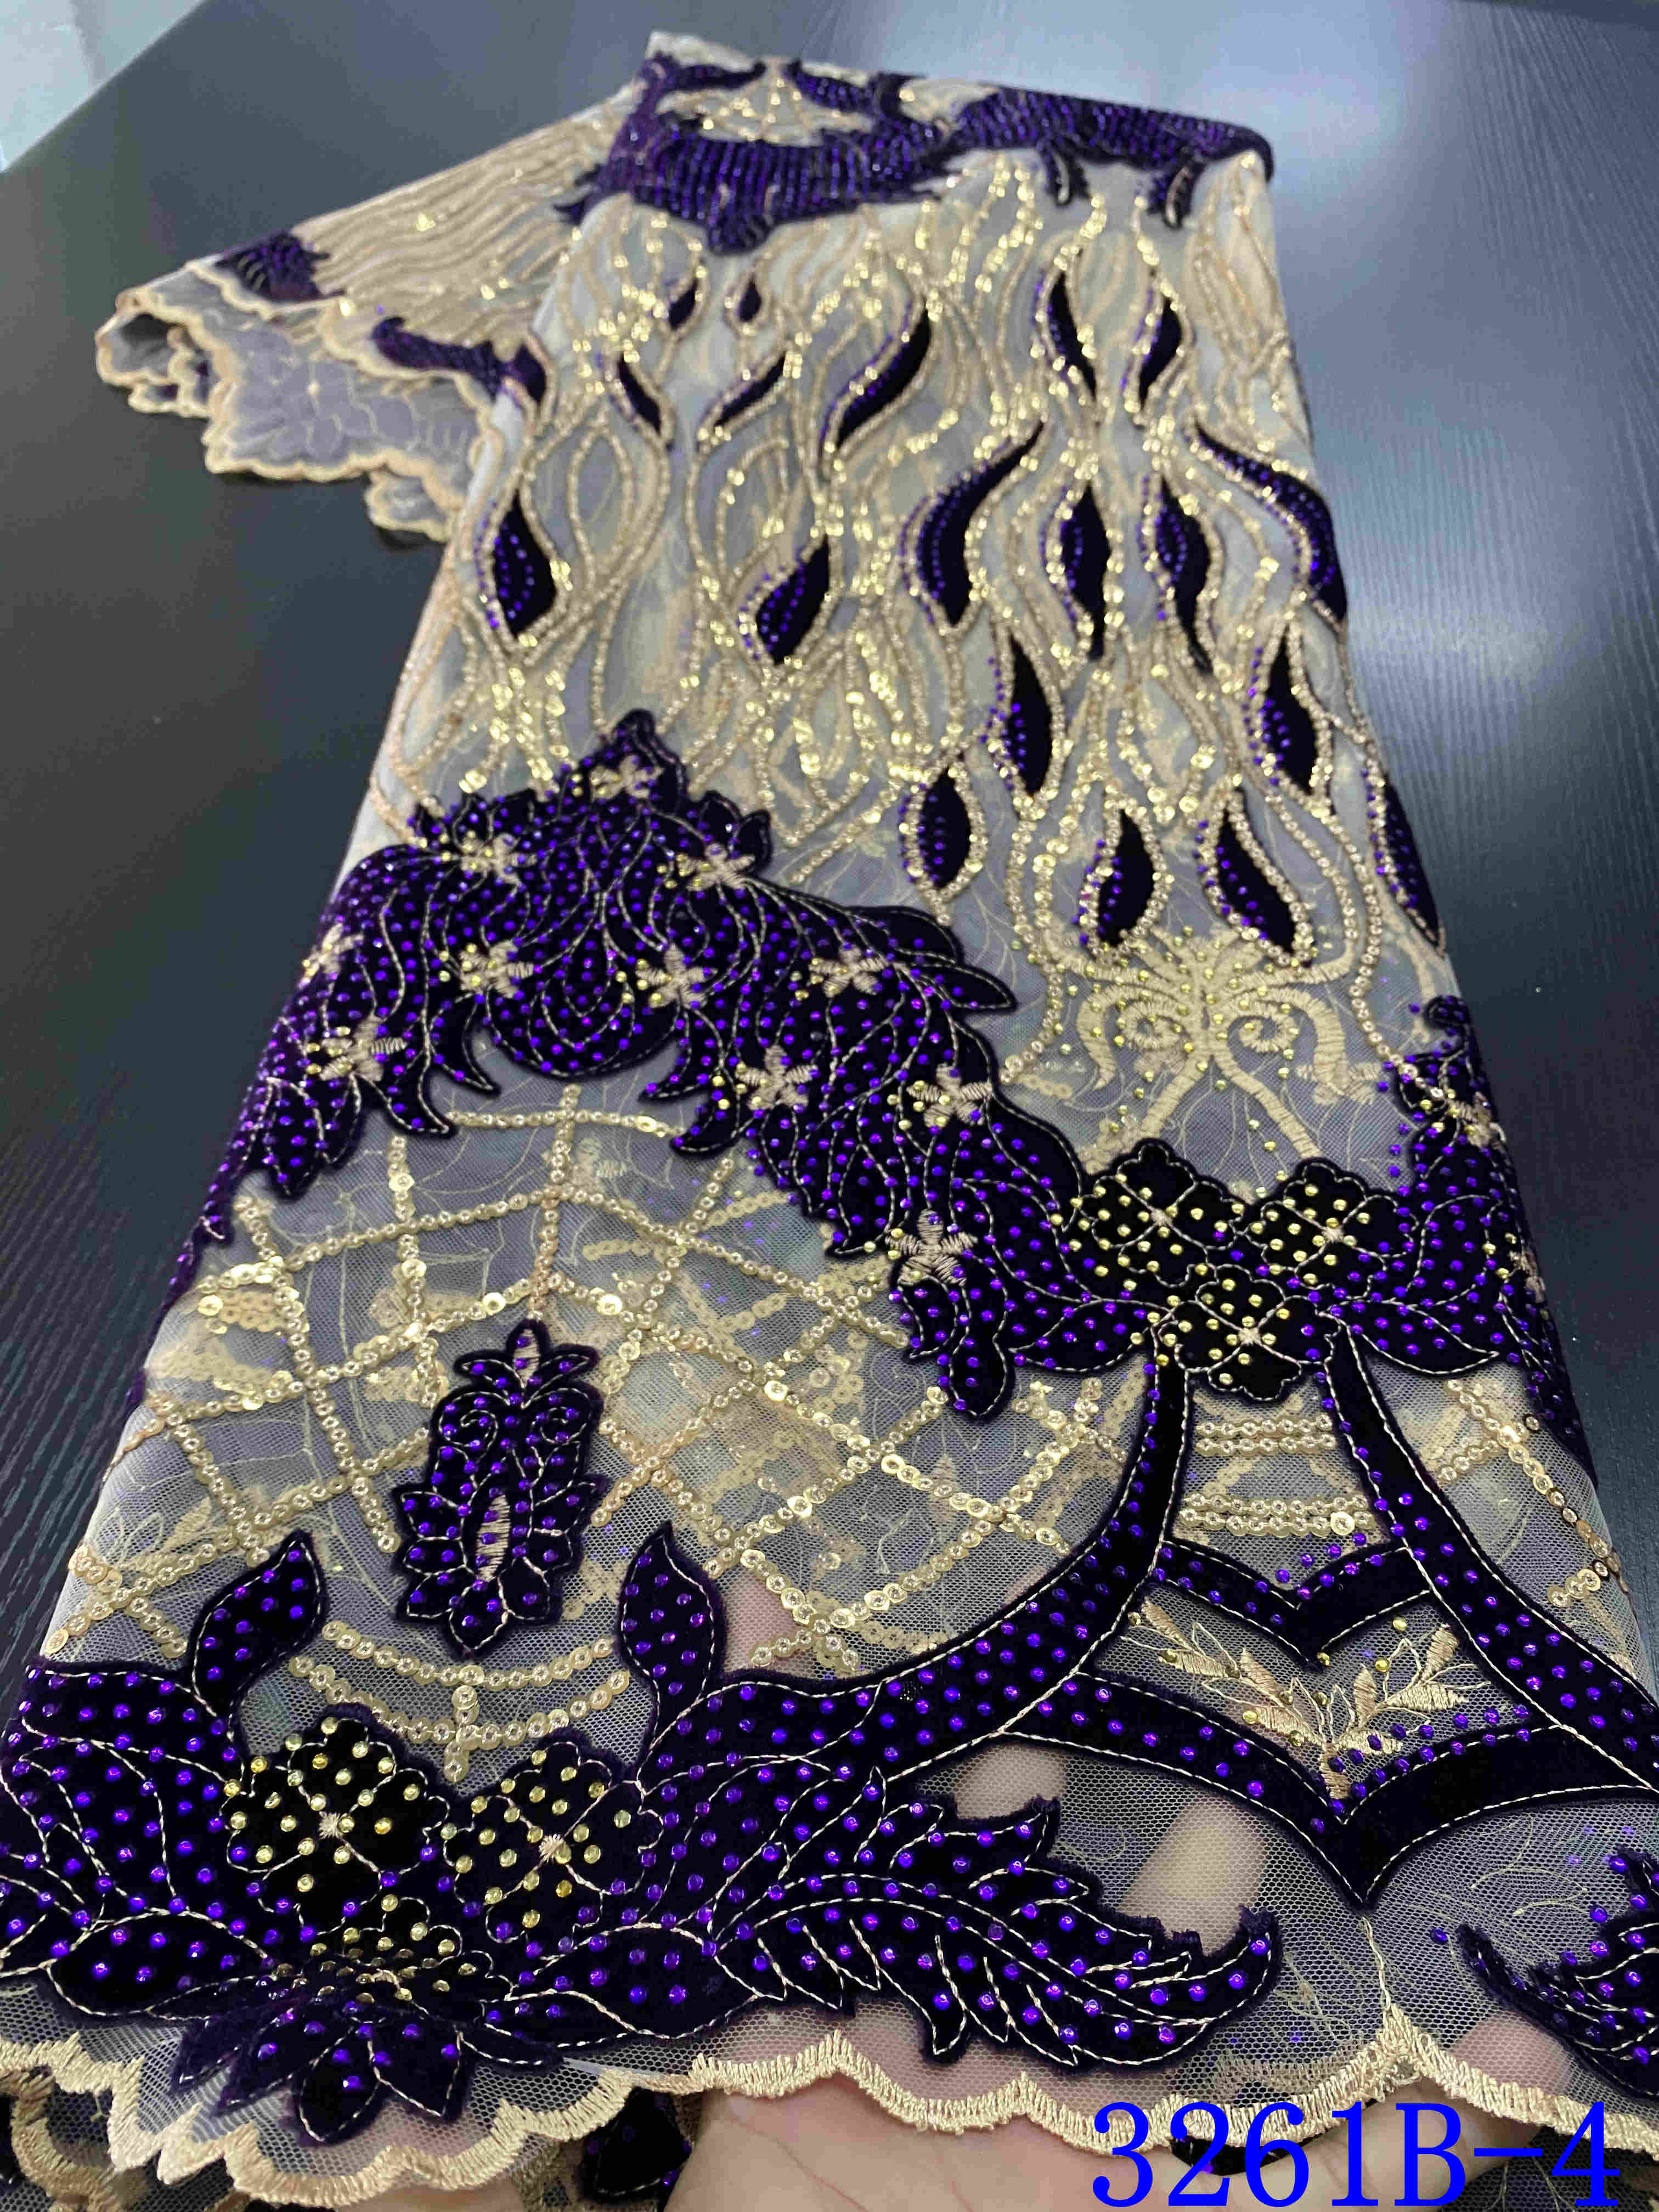 2020 High Quality Tulle French Nigerian Velvet Lace Fabrics Embroidered Sequins Lace Bridal African Lace Fabric YA3261B-4